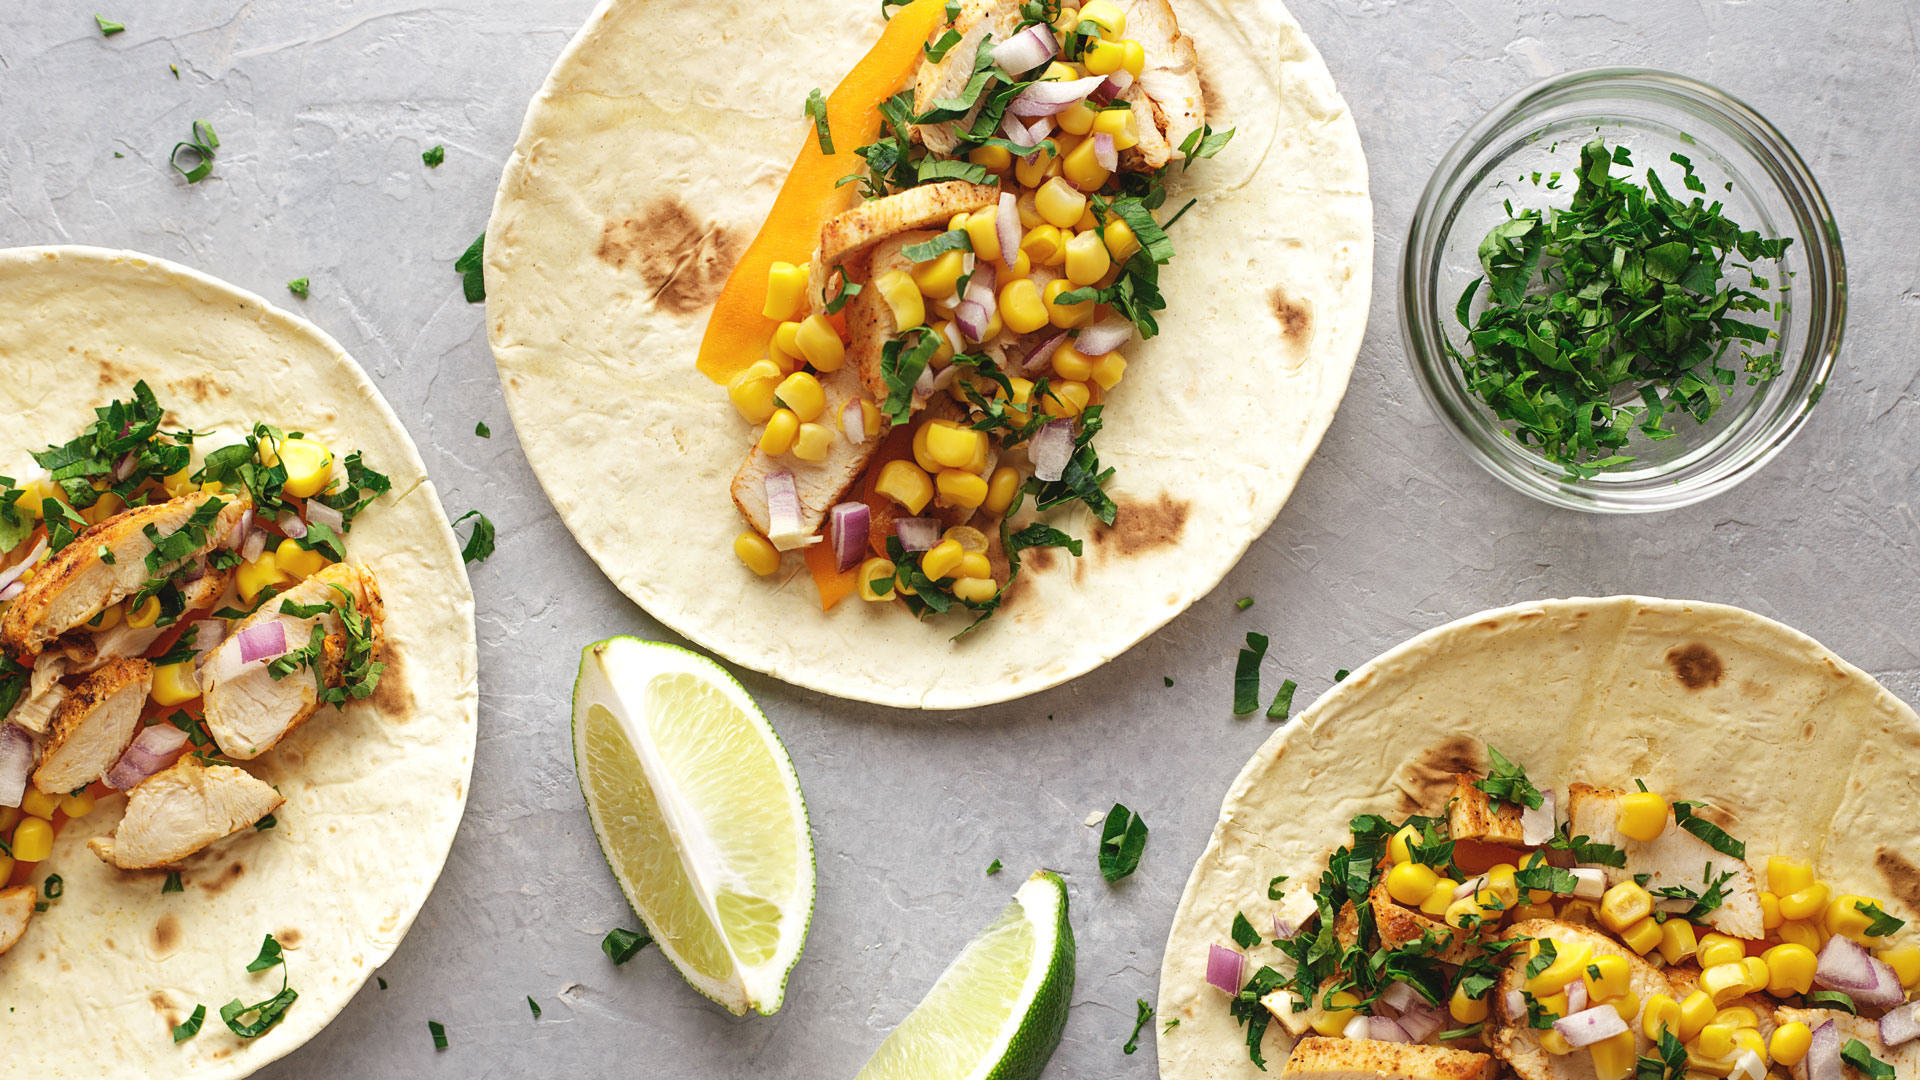 Latin American fast food tacos with chicken meat and vegetables on the gray stone background